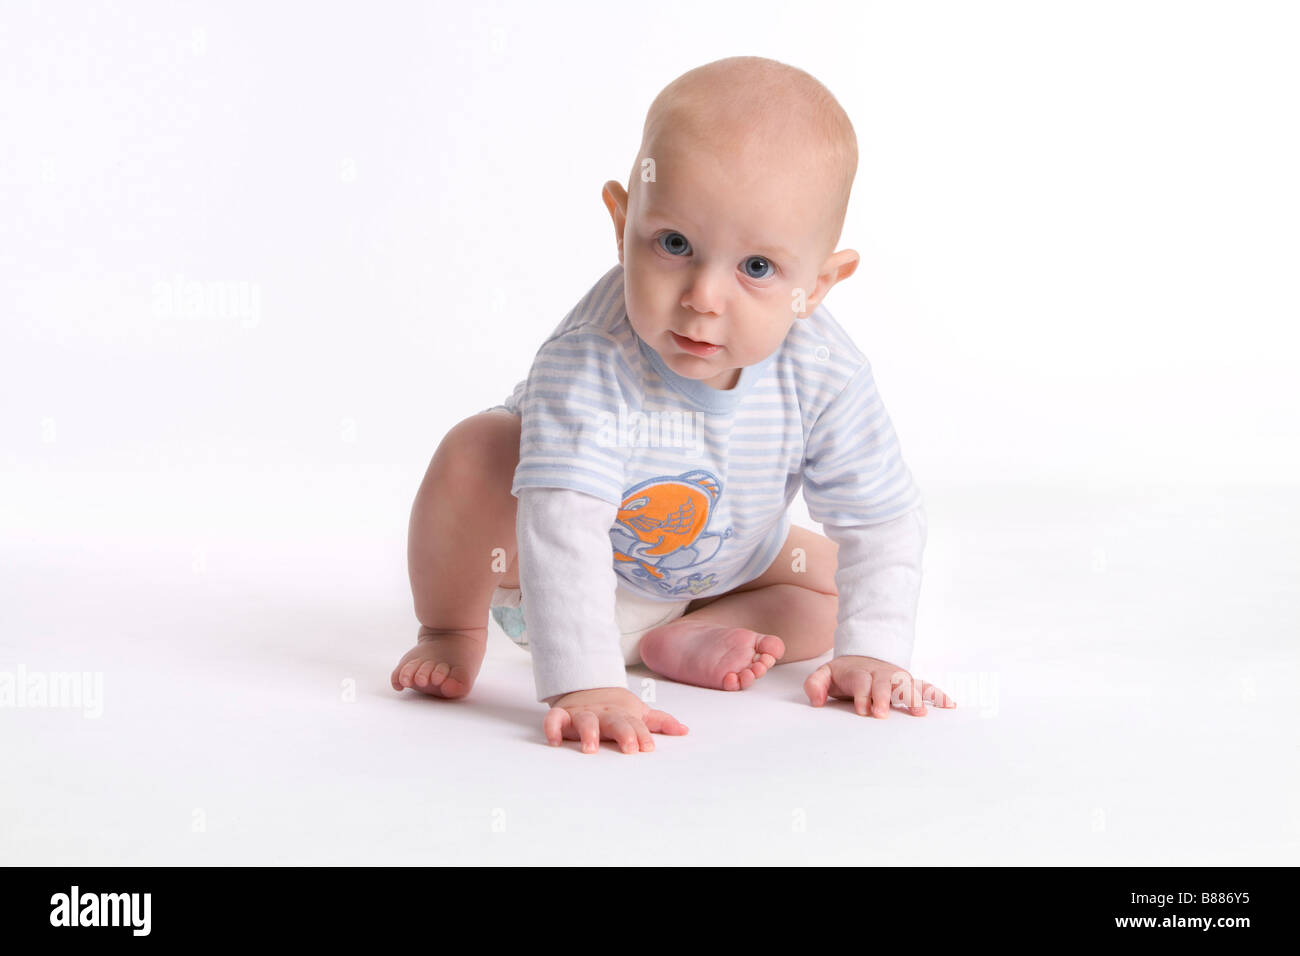 Portrait of a baby boy starting to crawl - Stock Image